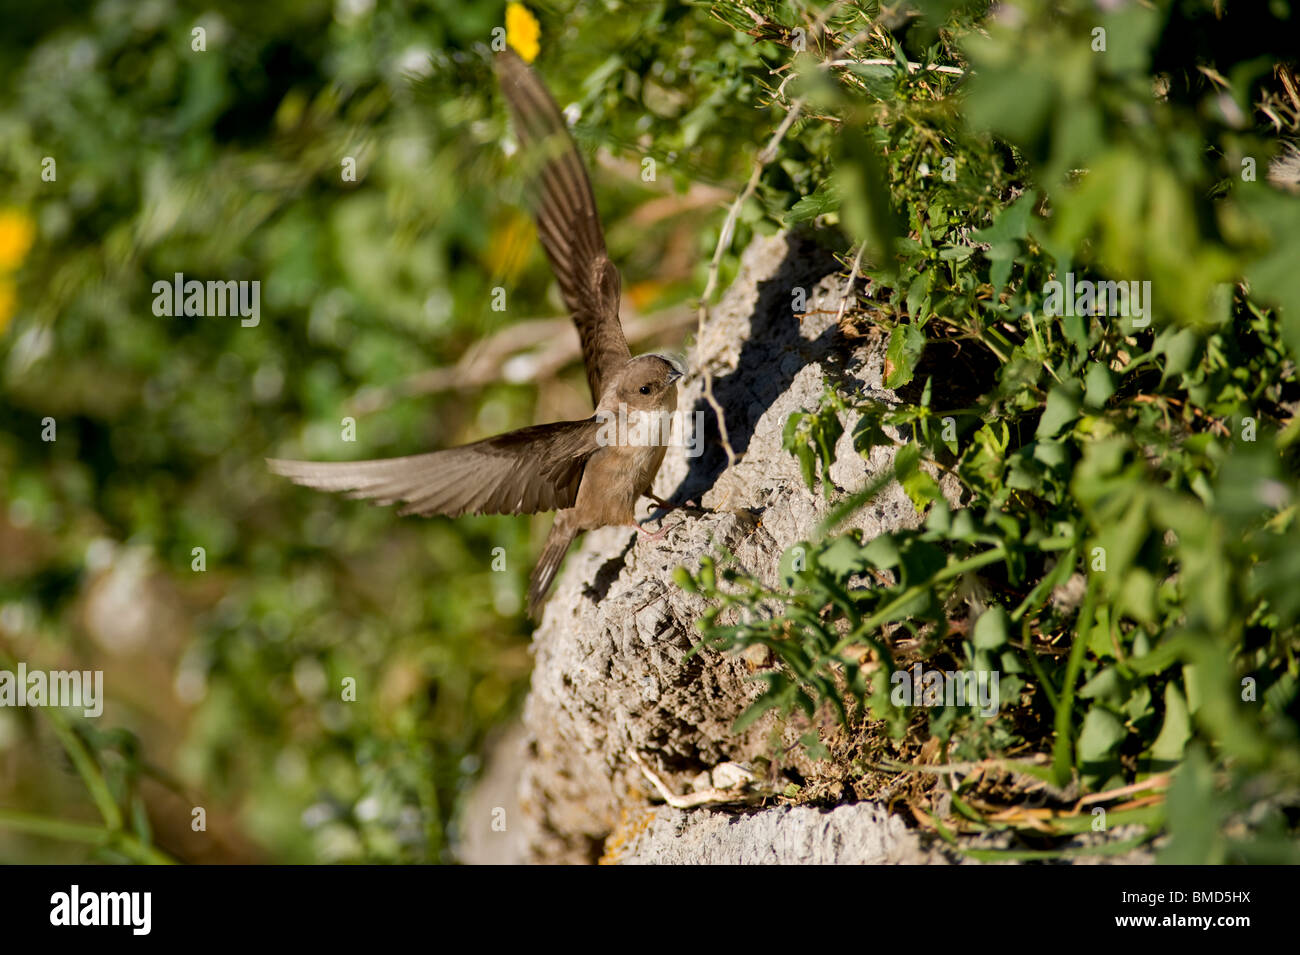 Crag Martin with wings open touching down on rock face - Stock Image